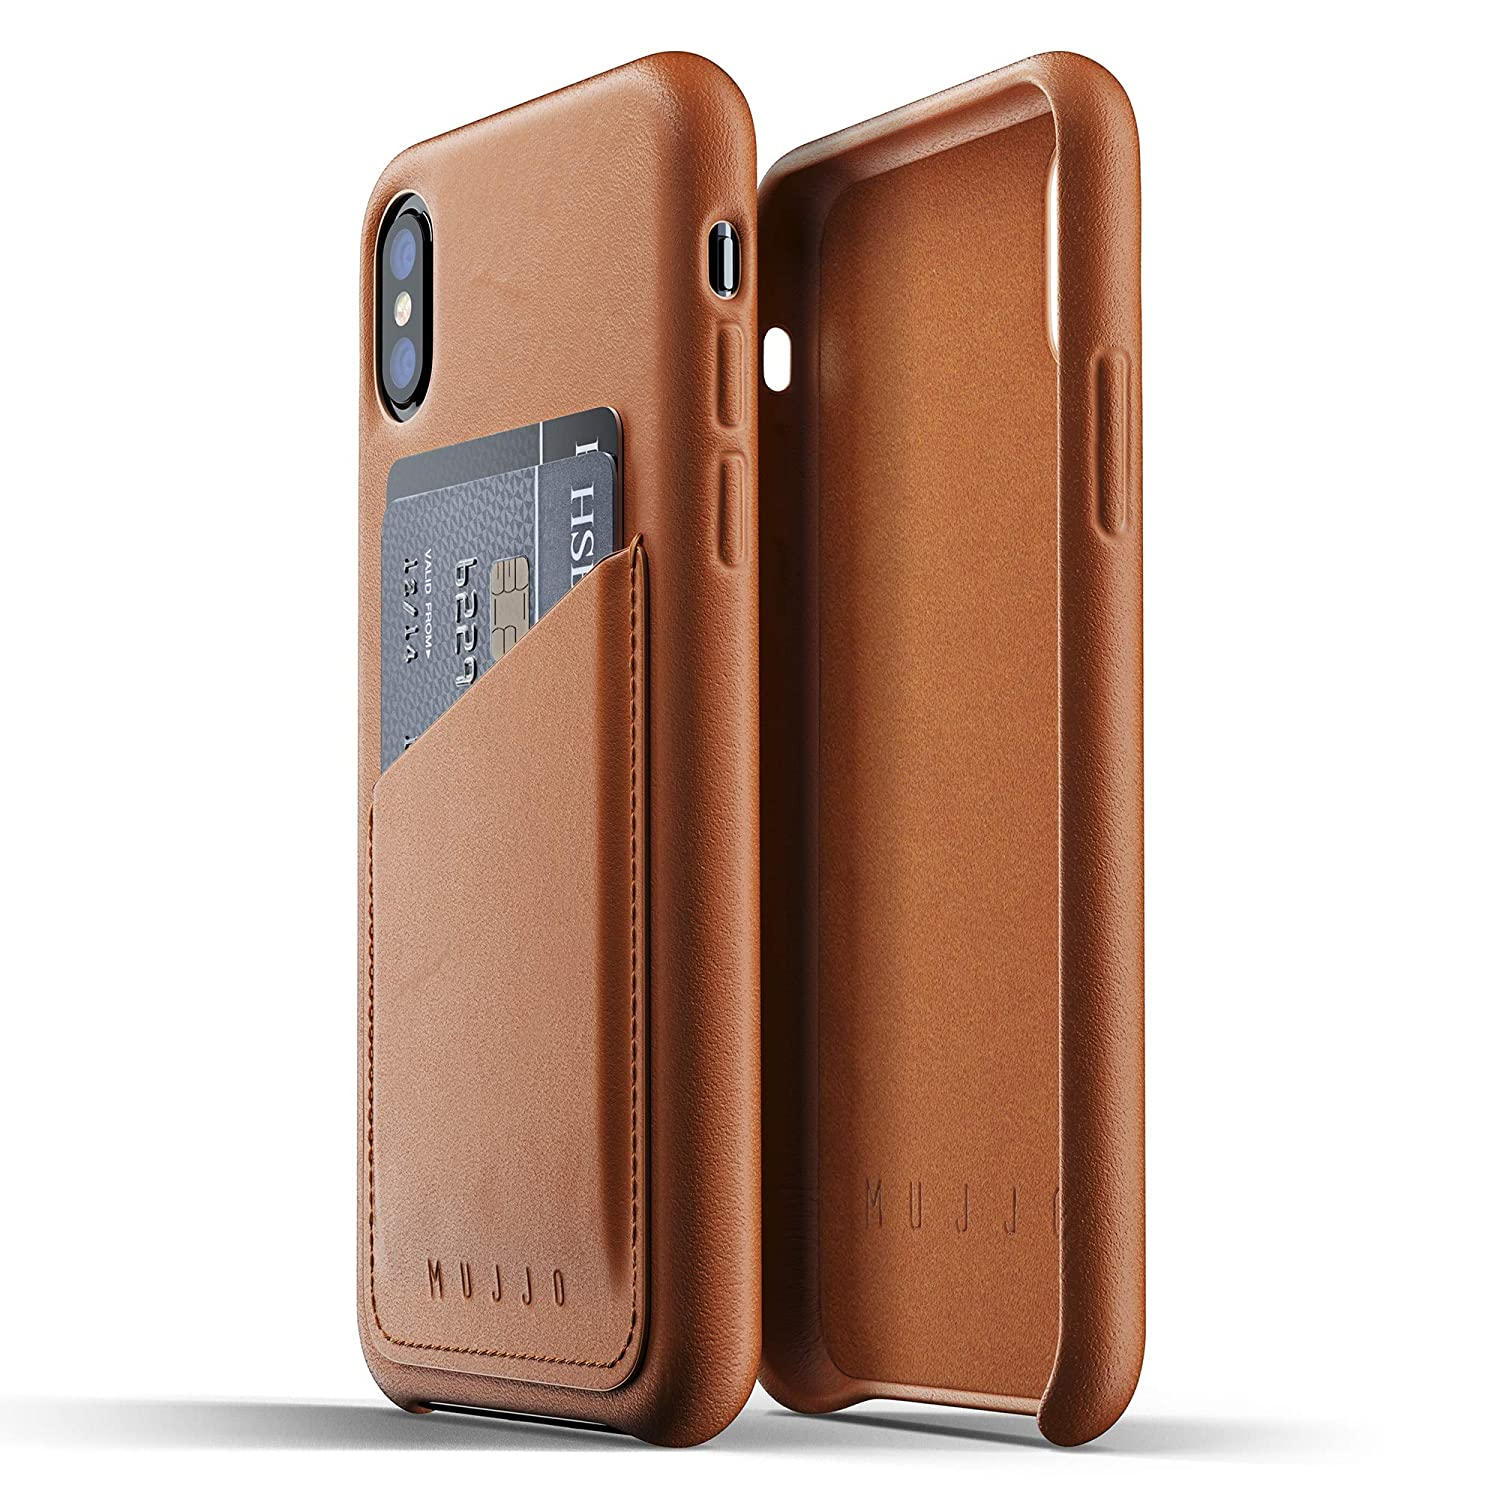 7b4dc13d01 Mujjo Full Leather Wallet Case compatible with iPhone XS, iPhone X | 2-3  Card Pocket, 1MM Protective Screen Bezel, Japanese Suede Lining (Tan)